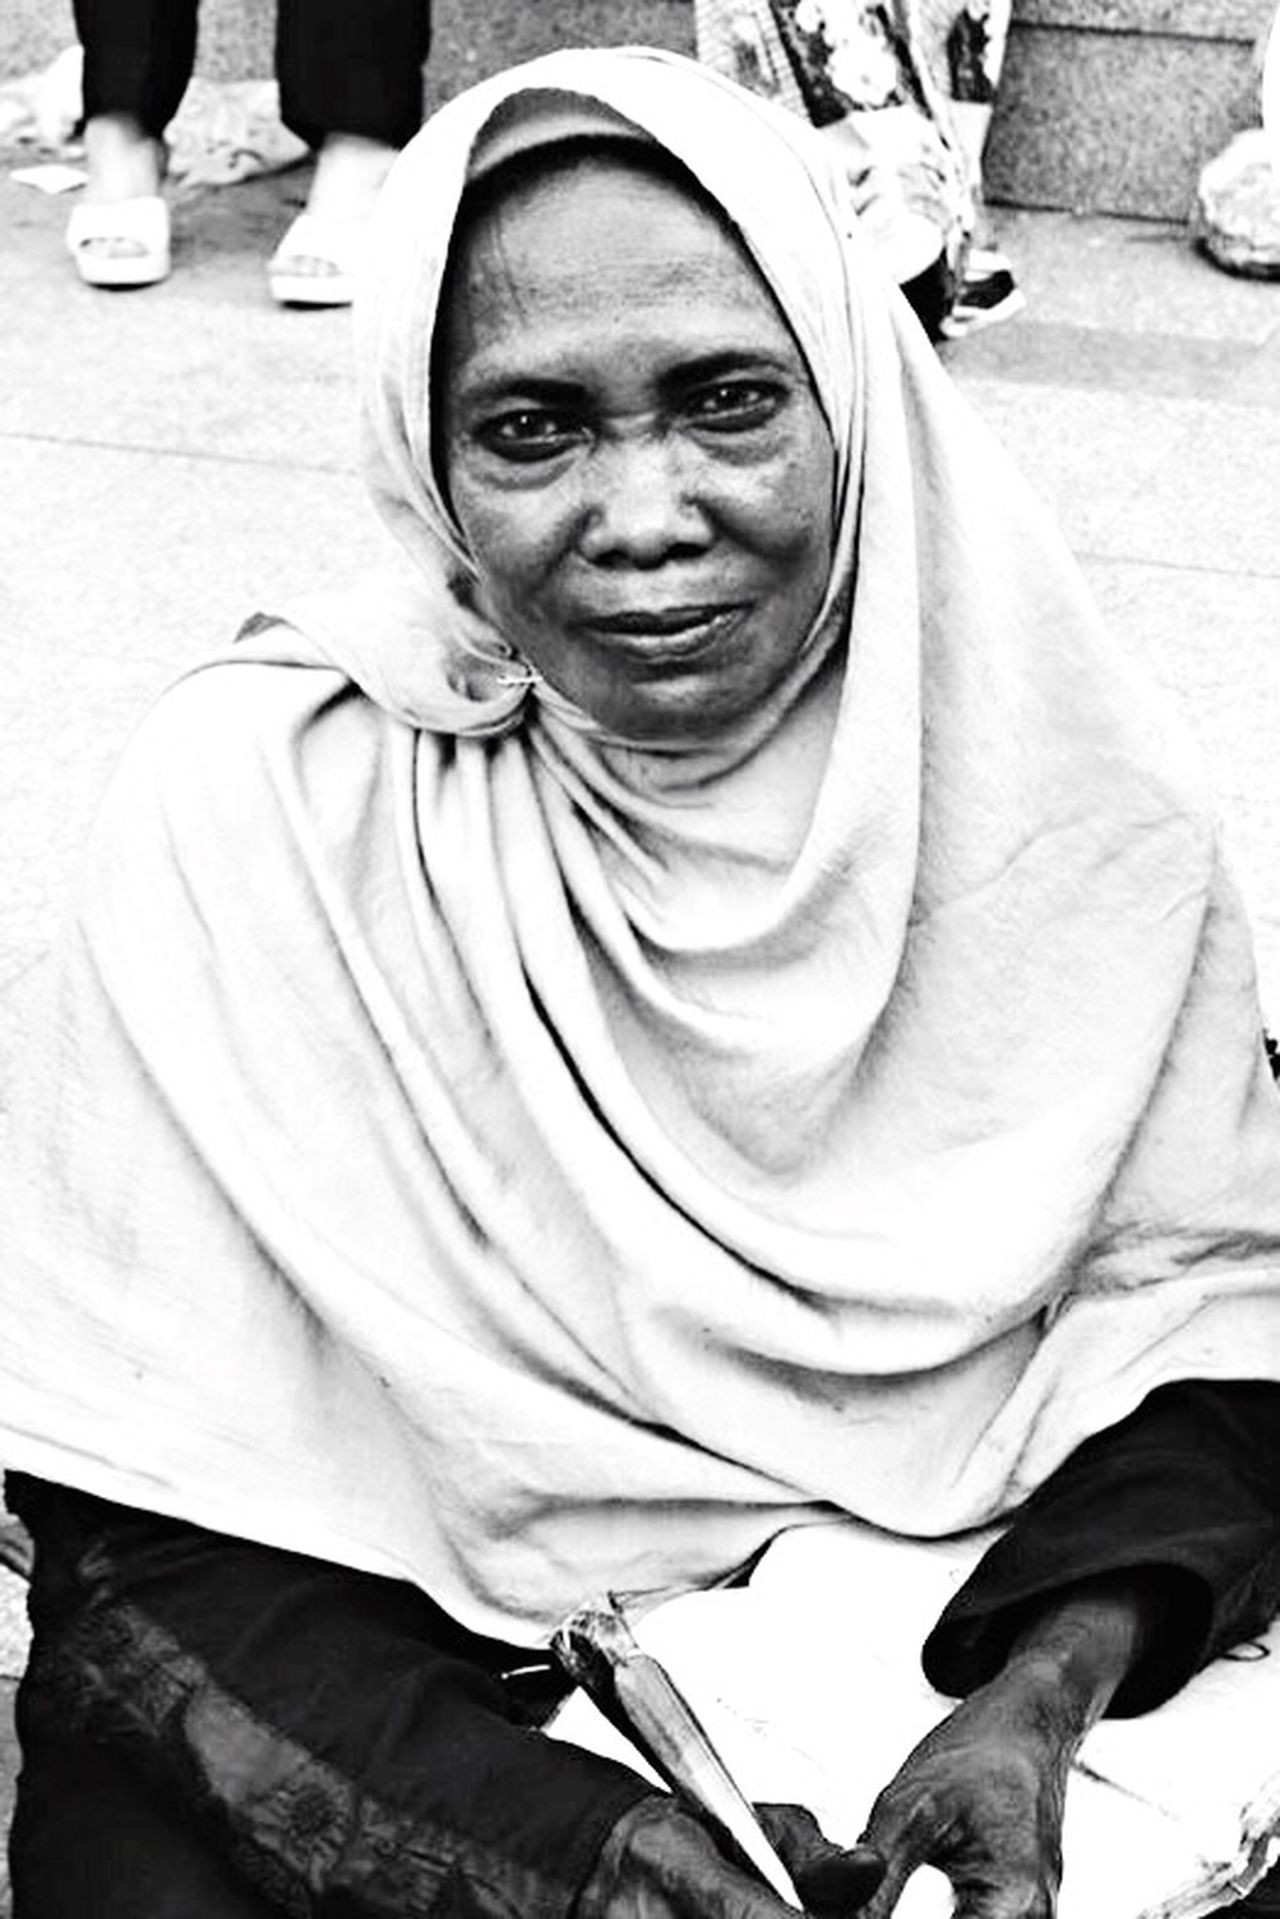 Untold Stories Cairo In Cairo EyeEmbestshots Blackandwhite EyeEm Best Shots - Black + White that poor woman who's making Henna ( Dye to adorn the skin ) for people on street for living every day , i gently asked her to take her a picture, she never mind , her simple smile that i'm sure many suffers and pains are hidden under gave me a hope to life , never gonna forget that i've met that simple woman one day ( her smile through my camera lens 😃 ) The Photojournalist - 2016 EyeEm Awards The Portraitist - 2016 EyeEm Awards